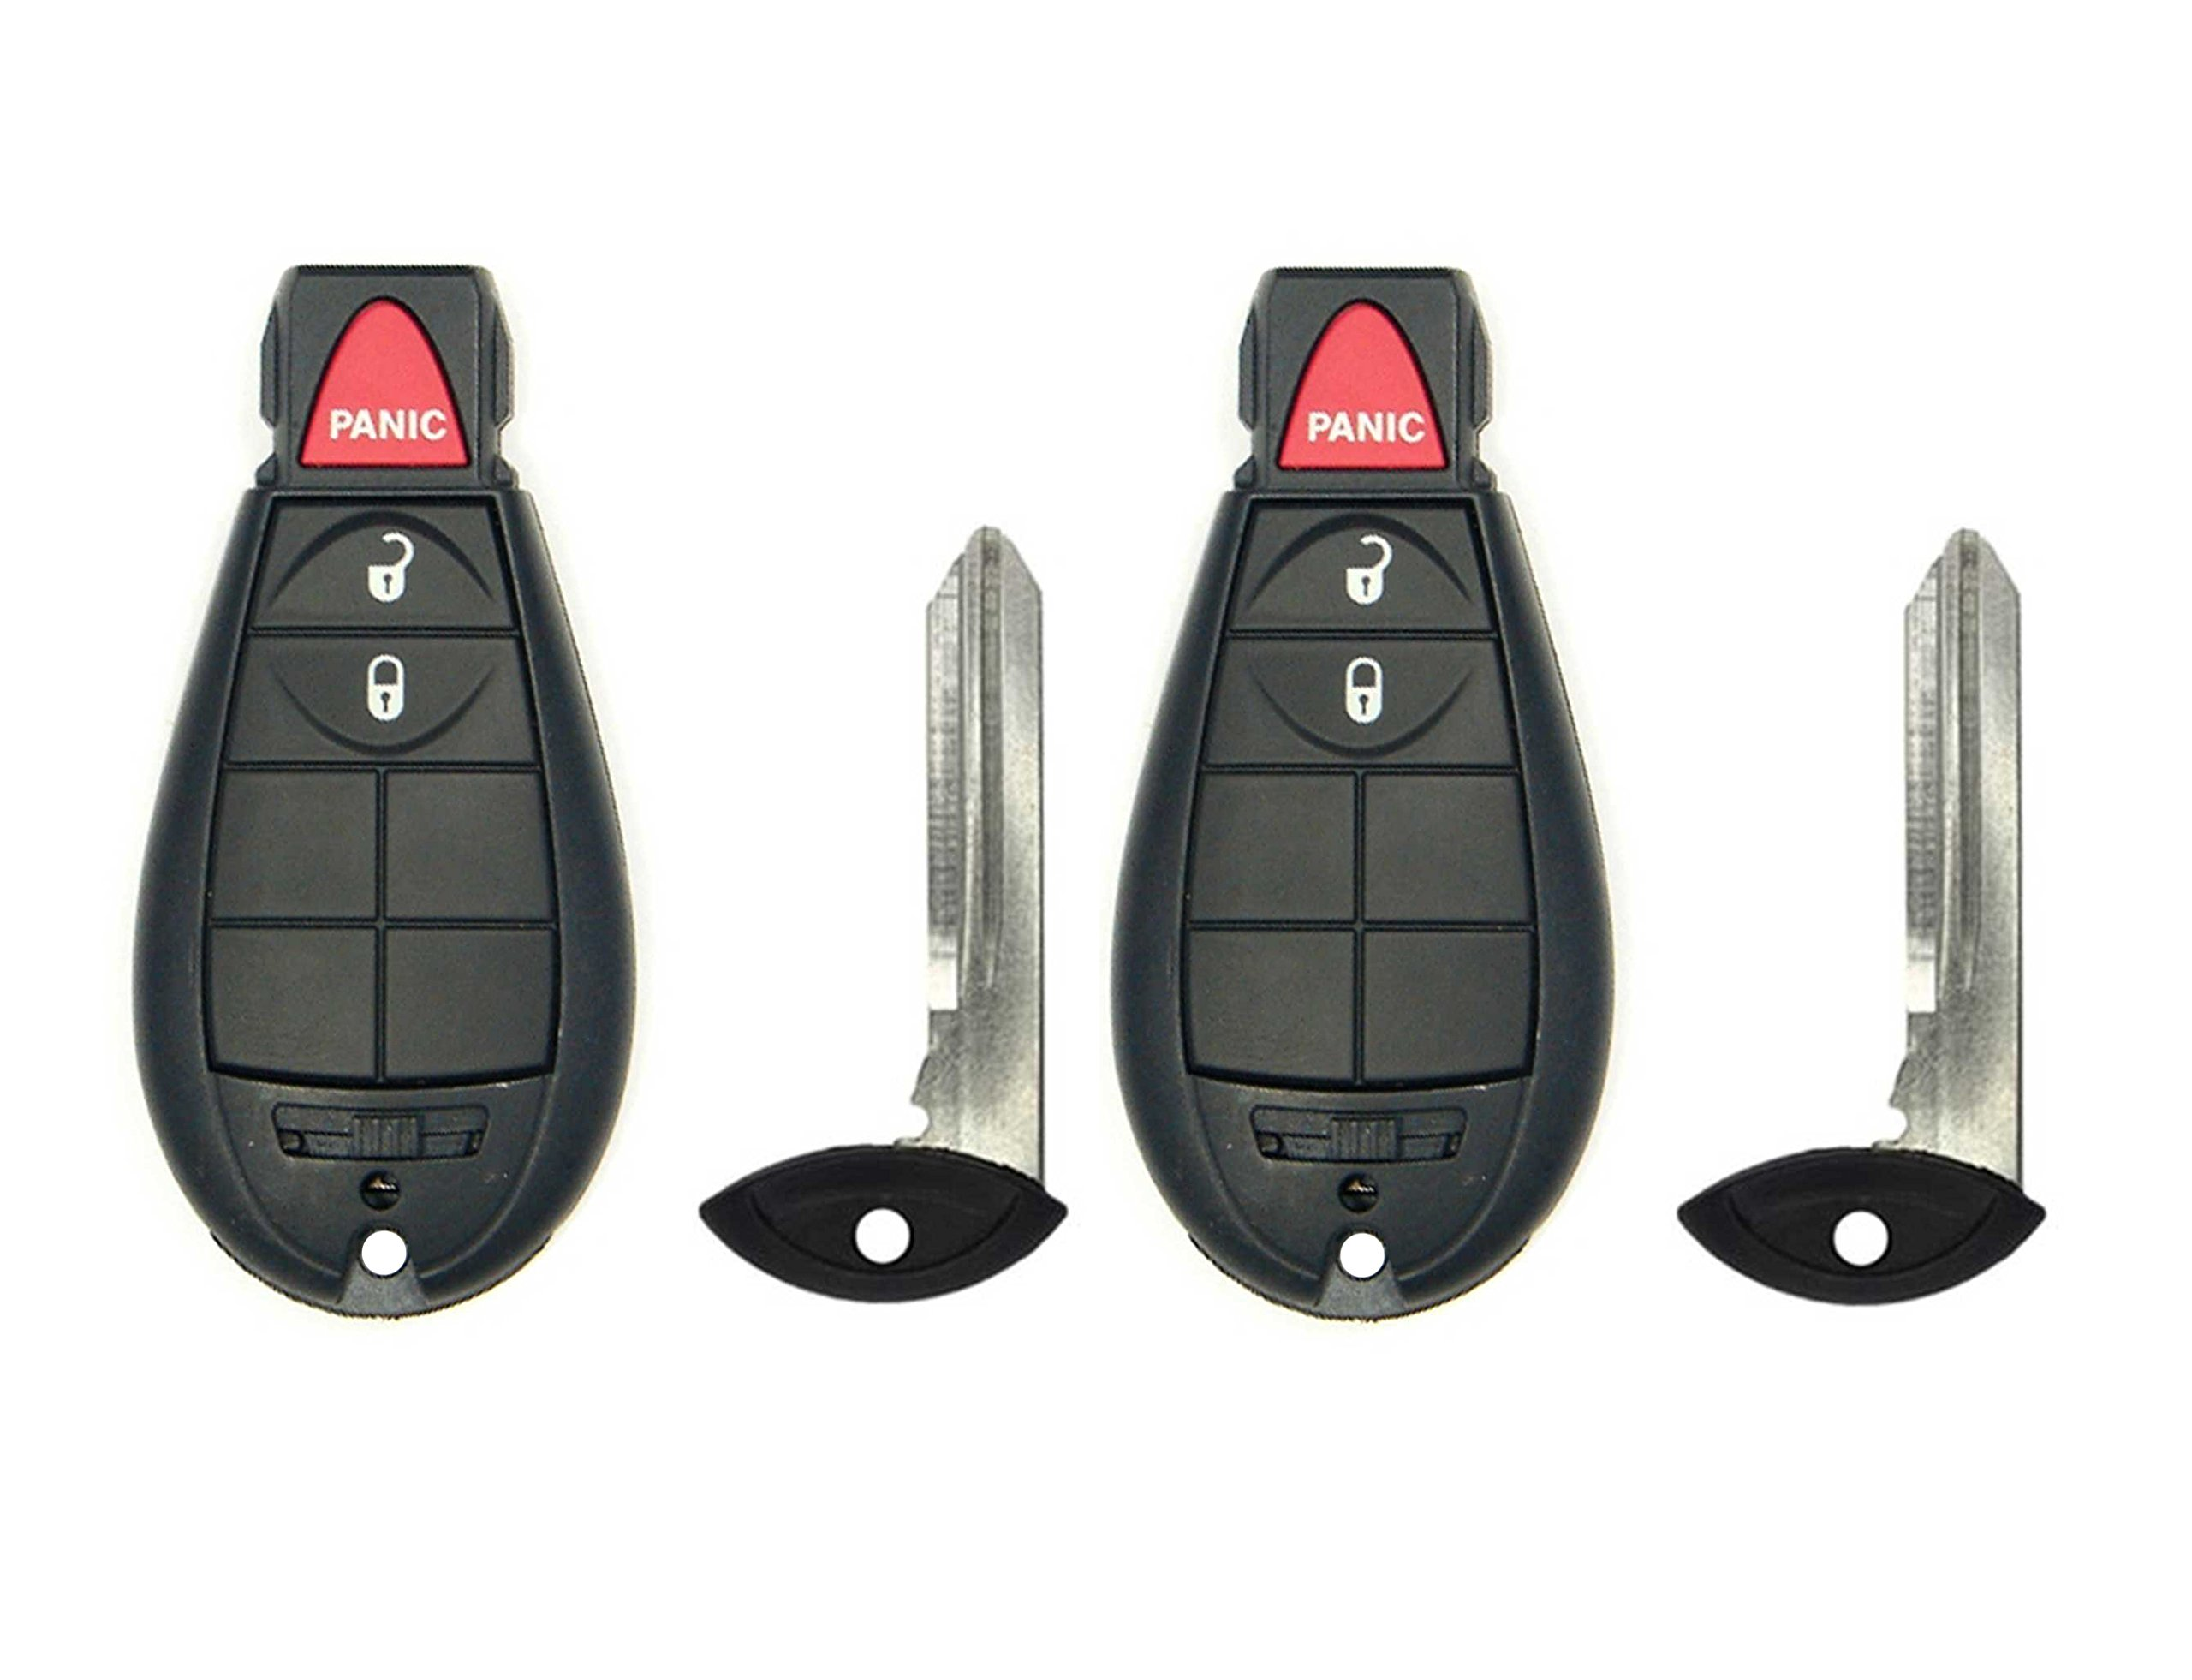 CanadaAutomotiveSupply © - 2 New Replacement Uncut Keyless Remote Fobik Car Key Fobs for select Dodge vehicles M3N5WY783X IYZ-C01C